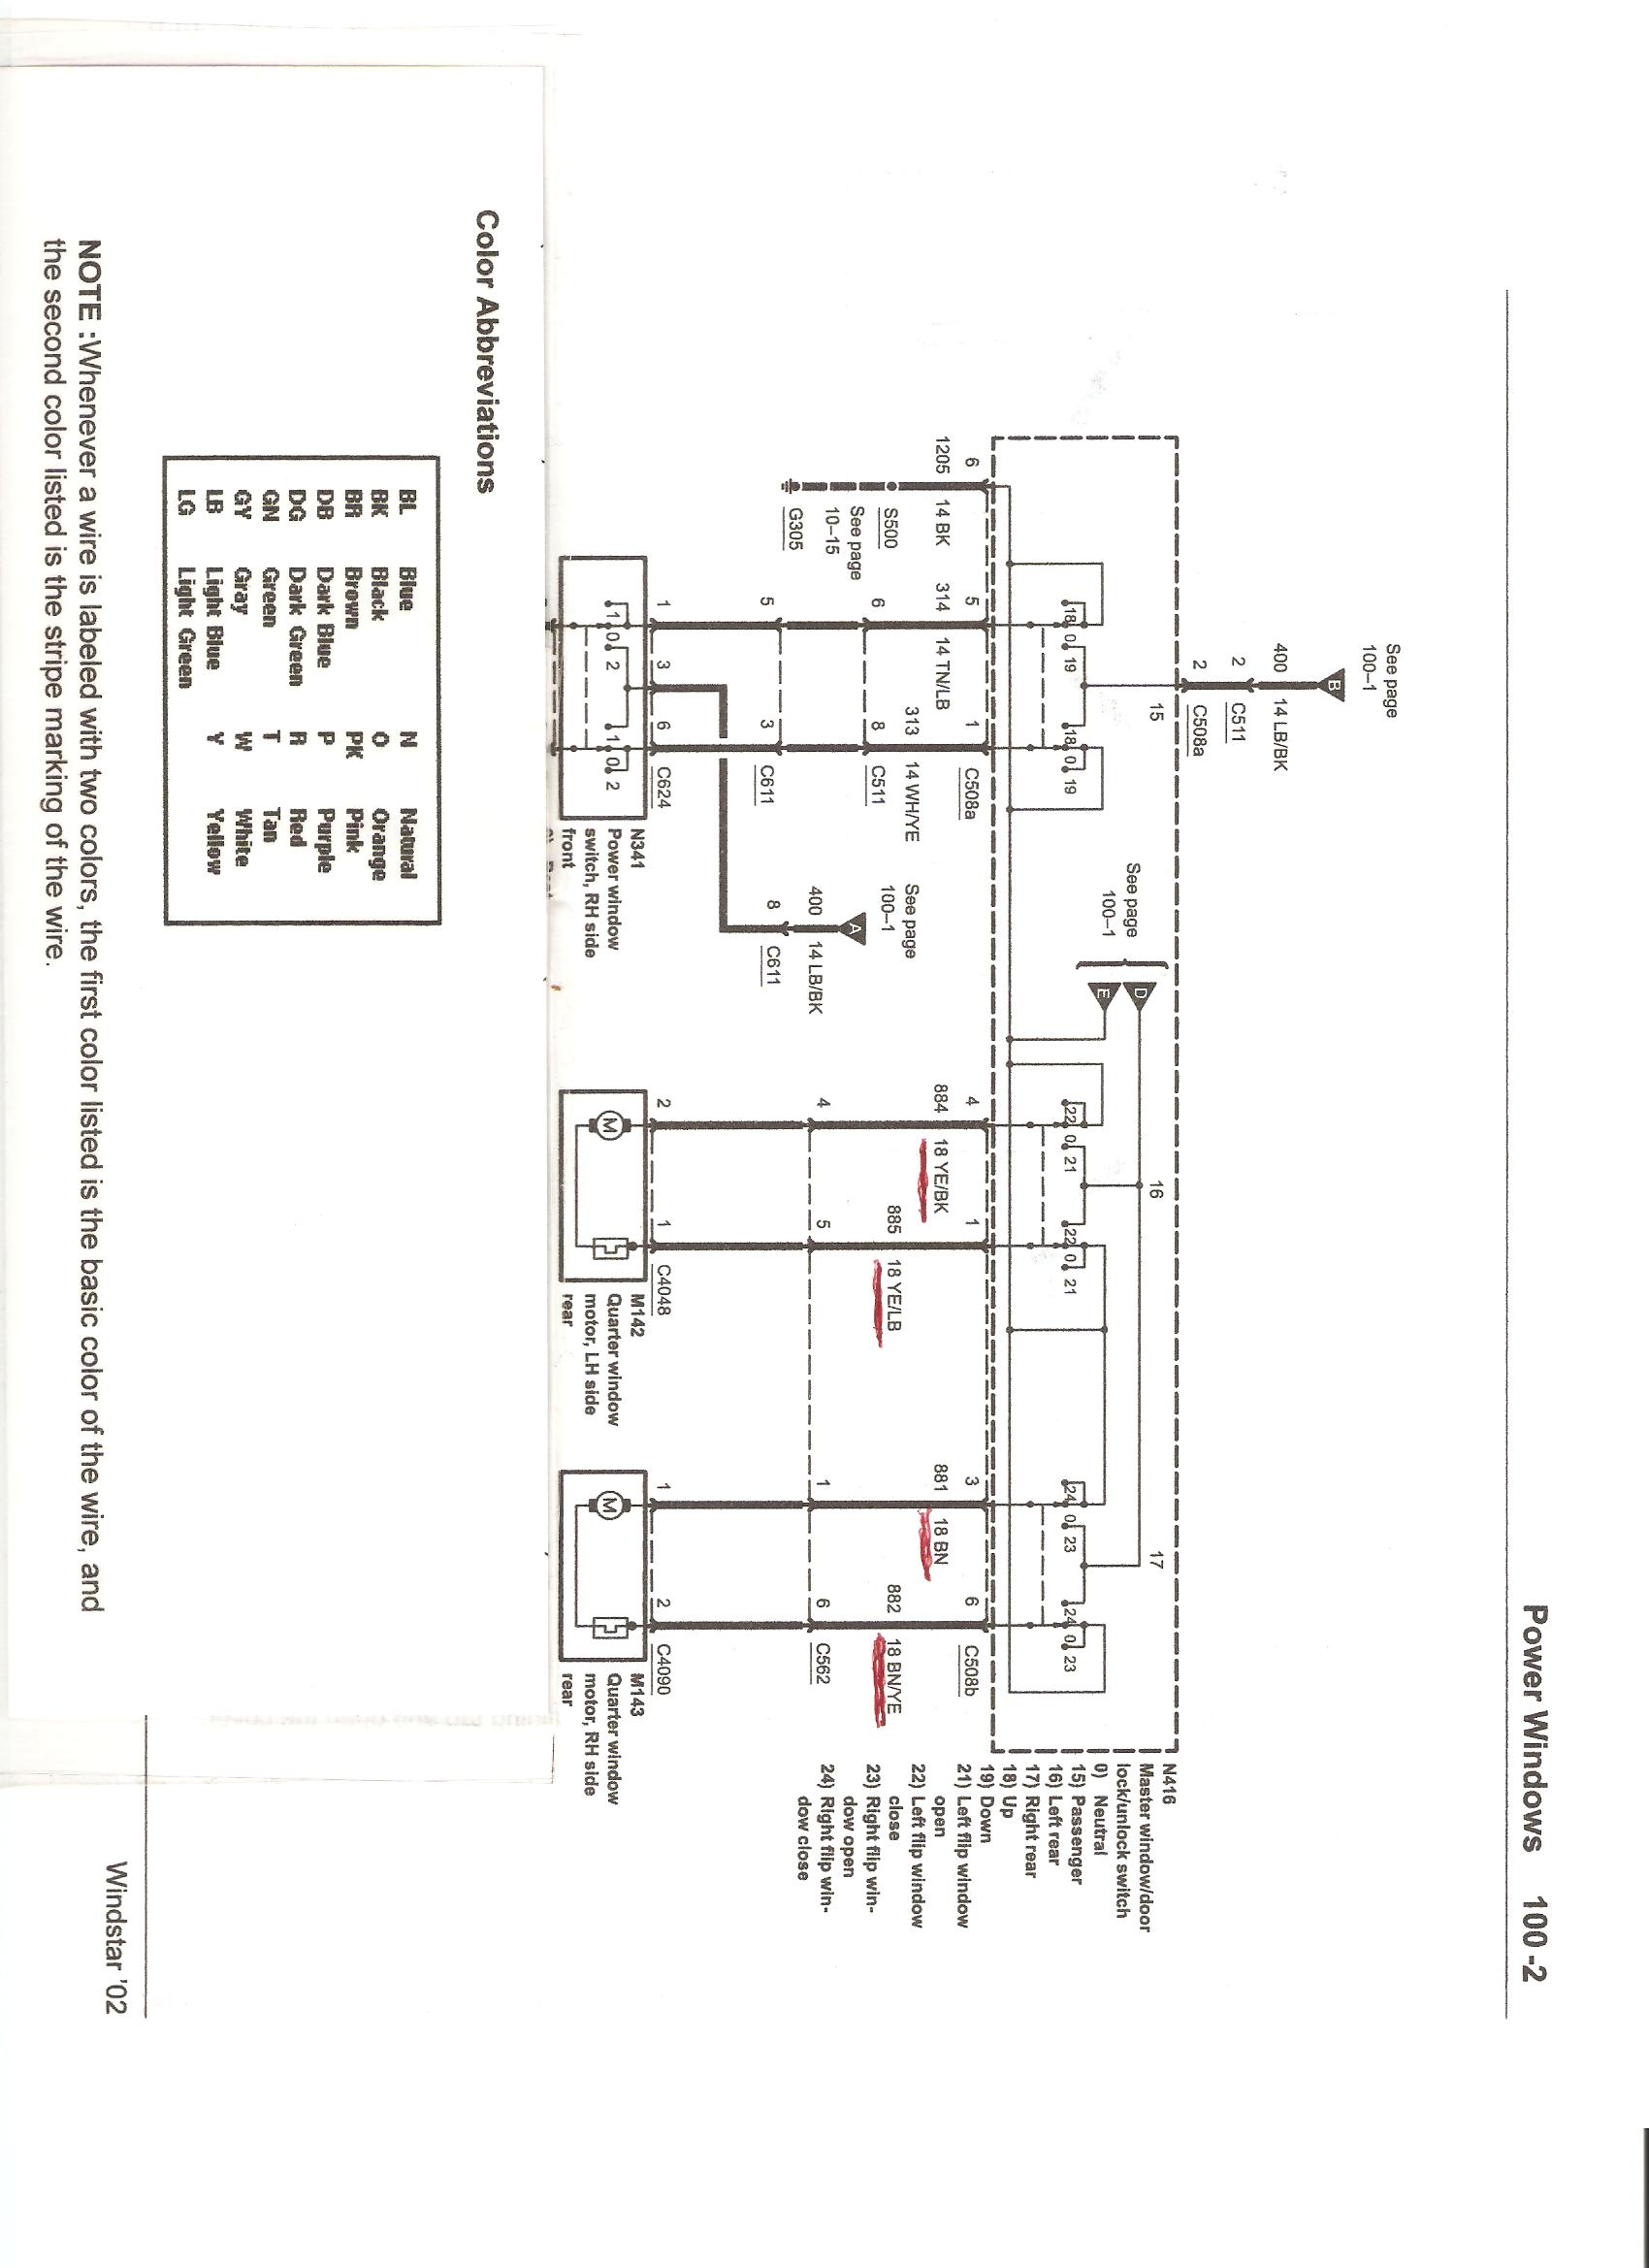 how do you test swith and or motor on 2002 windstar rear